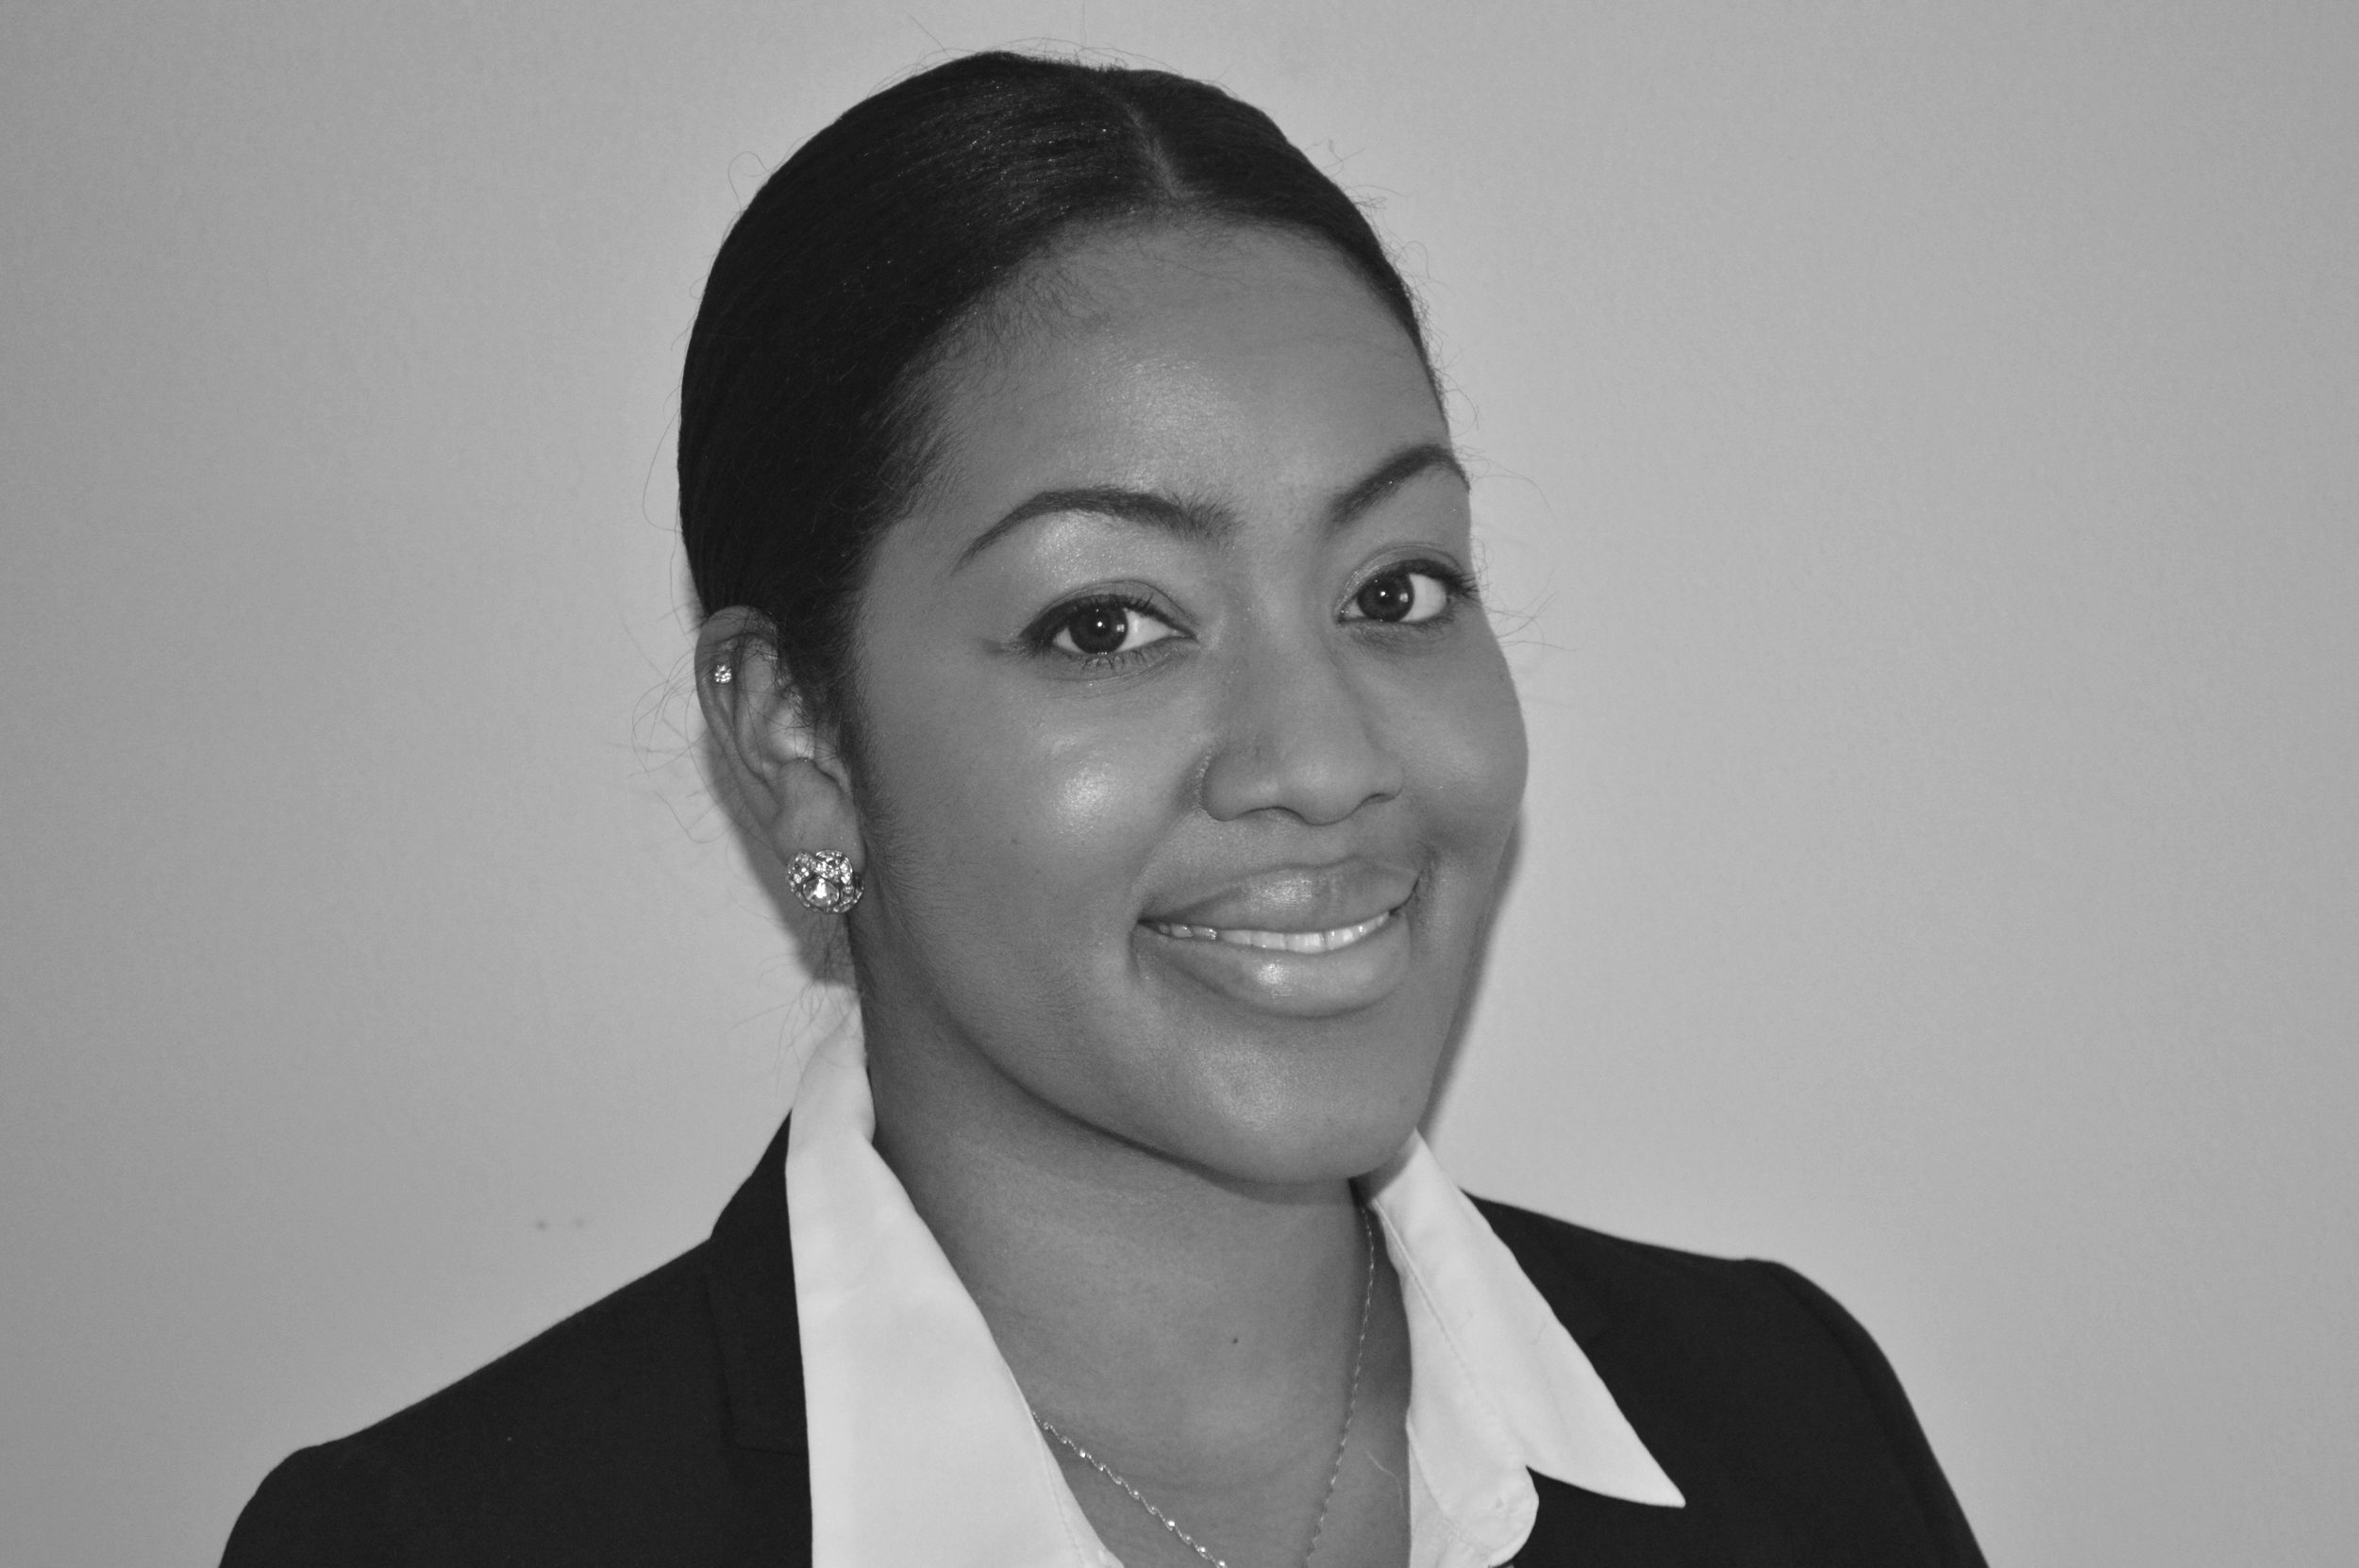 <h3>Kalyn Hall</h3><h5>Marketing Specialist</h5><i>Smithsonian National Museum of African American History and Culture</i>